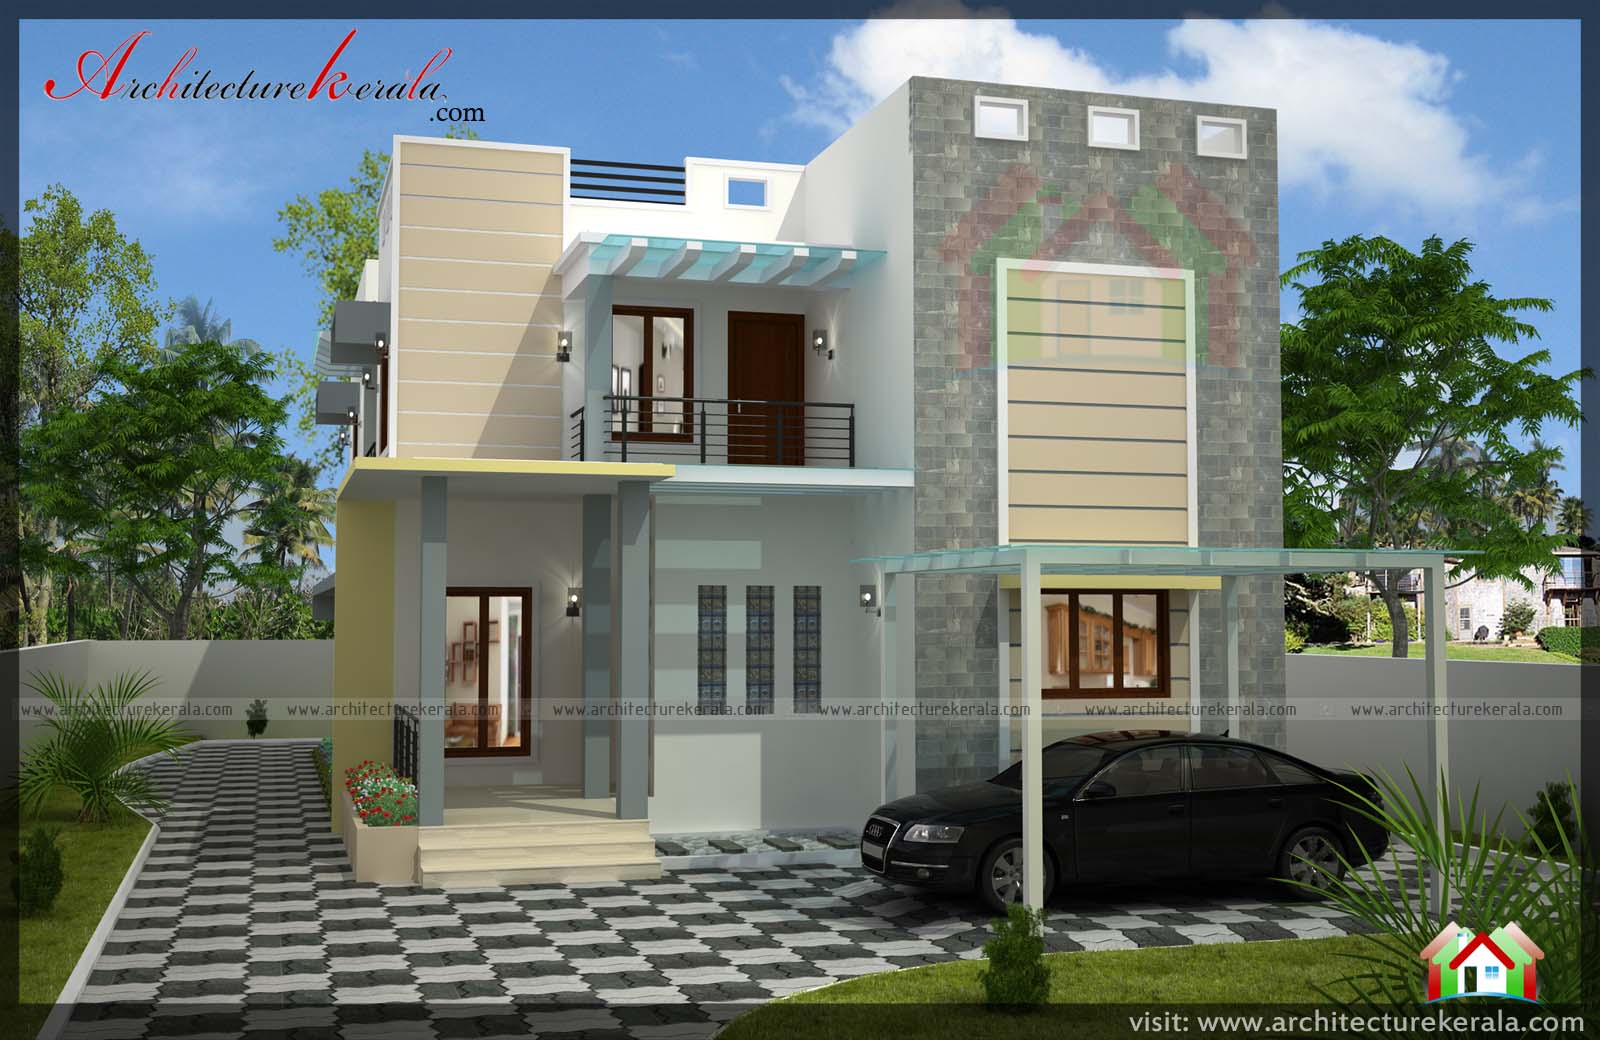 2400 square feet 4 bedroom kerala house architecture kerala. Black Bedroom Furniture Sets. Home Design Ideas